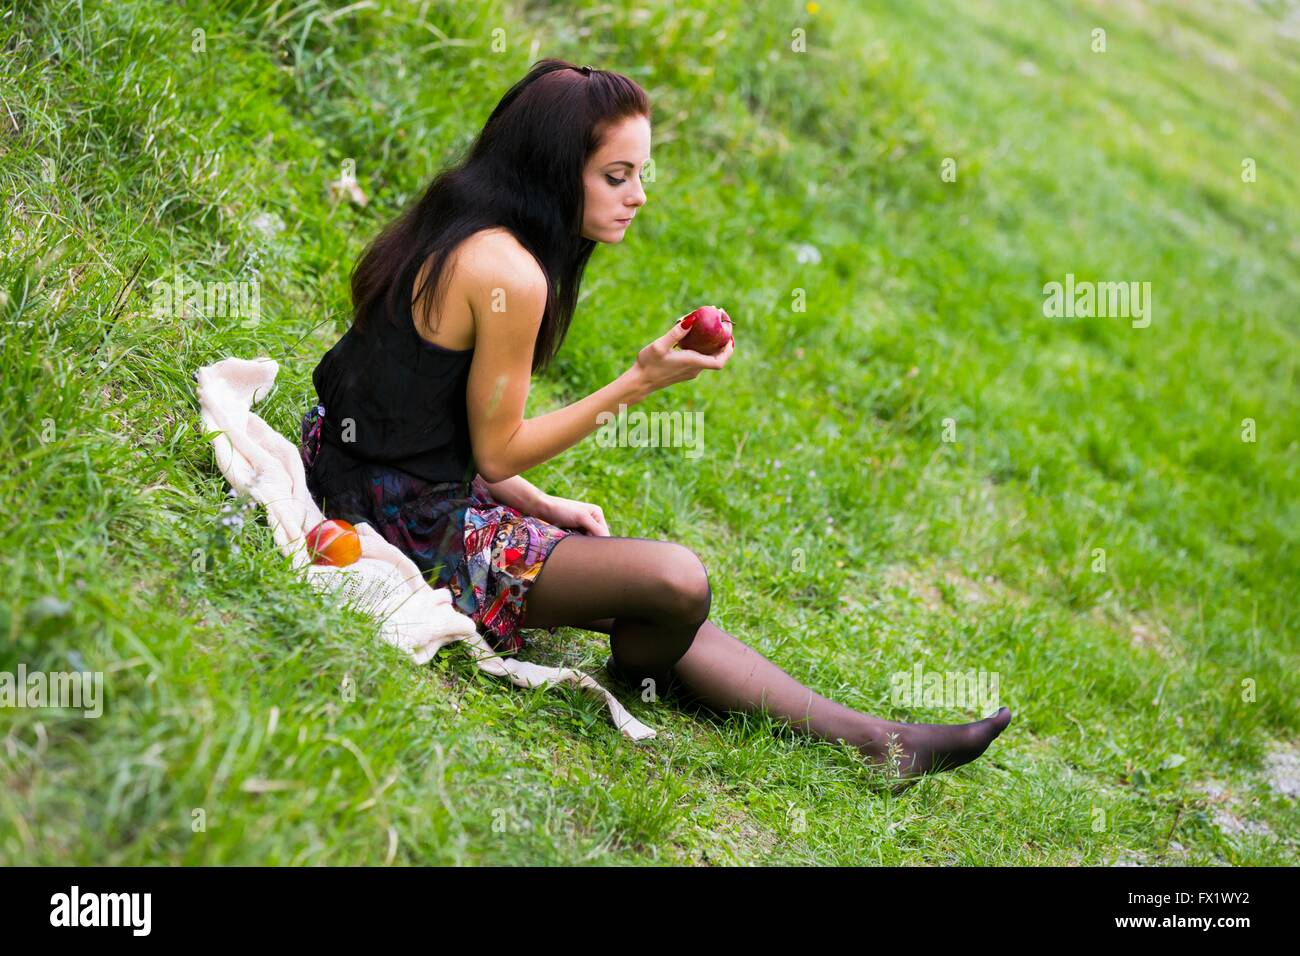 Teen girl with apple in hand on greenfield sitting angled barefeet outdoors attractive lifestyle Stock Photo